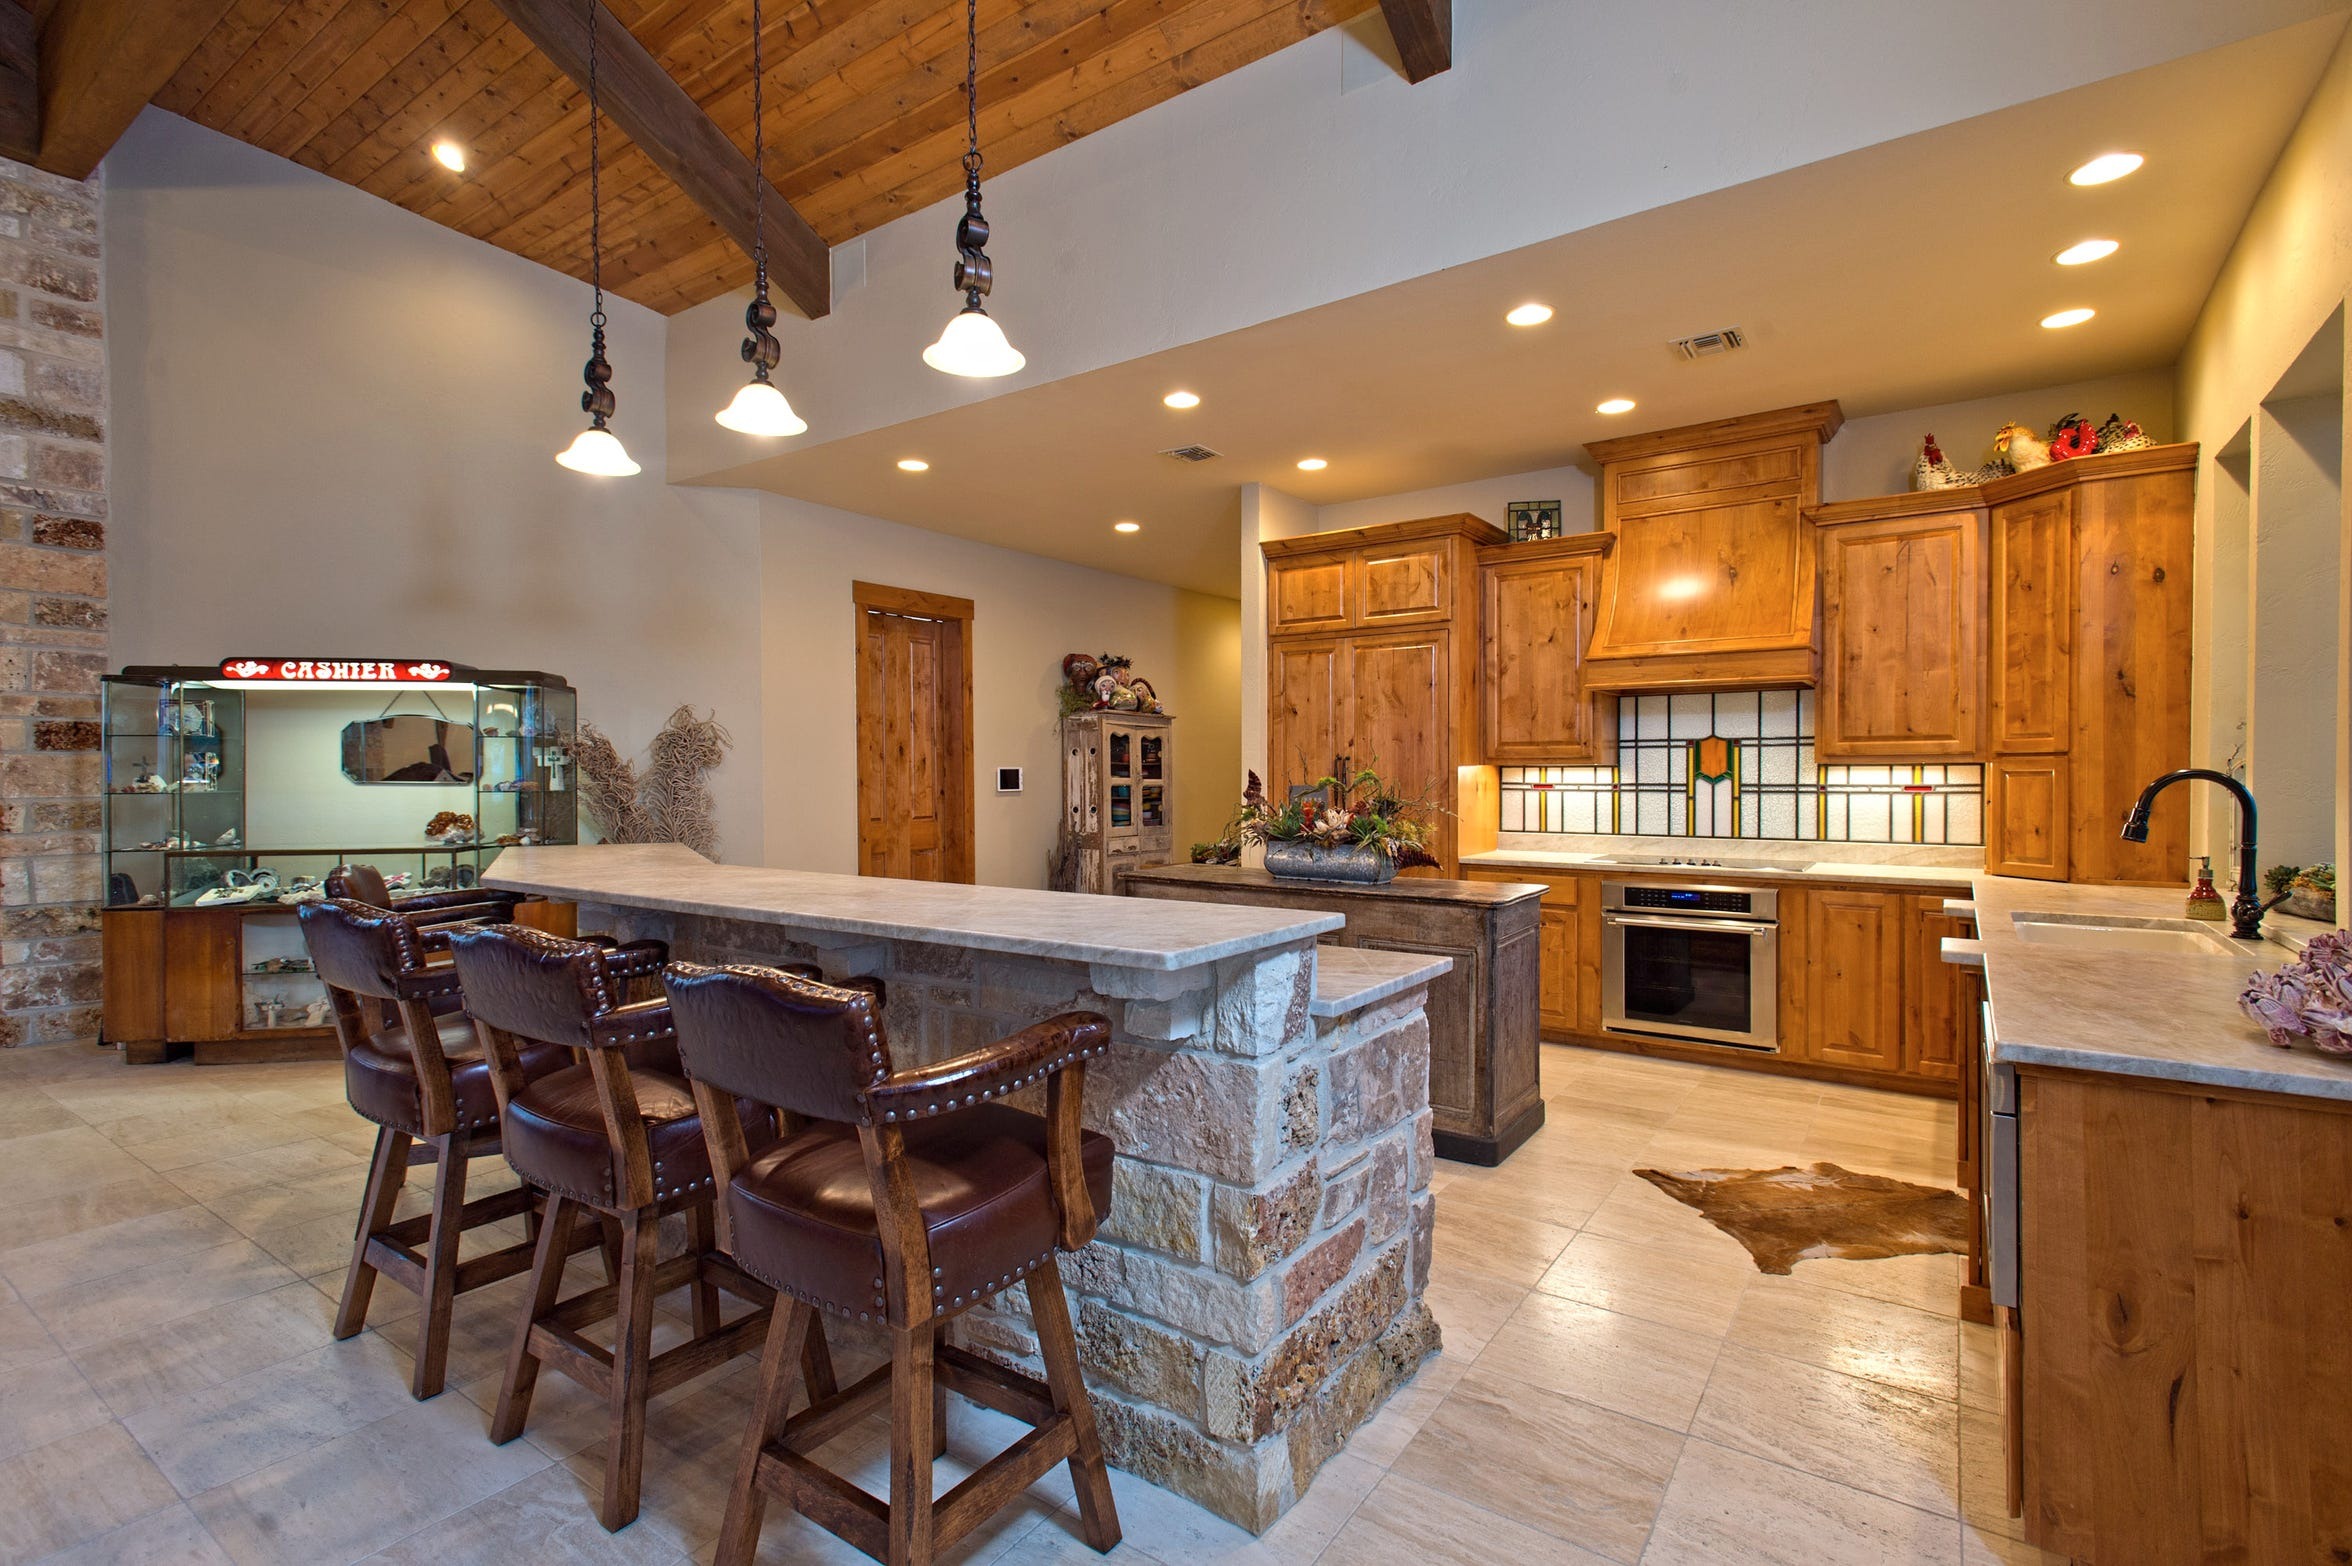 A unique stained glass backsplash, a rock breakfast bar and an antique cashier station purchased  from a local restaurant auction are highlights of the open concept kitchen